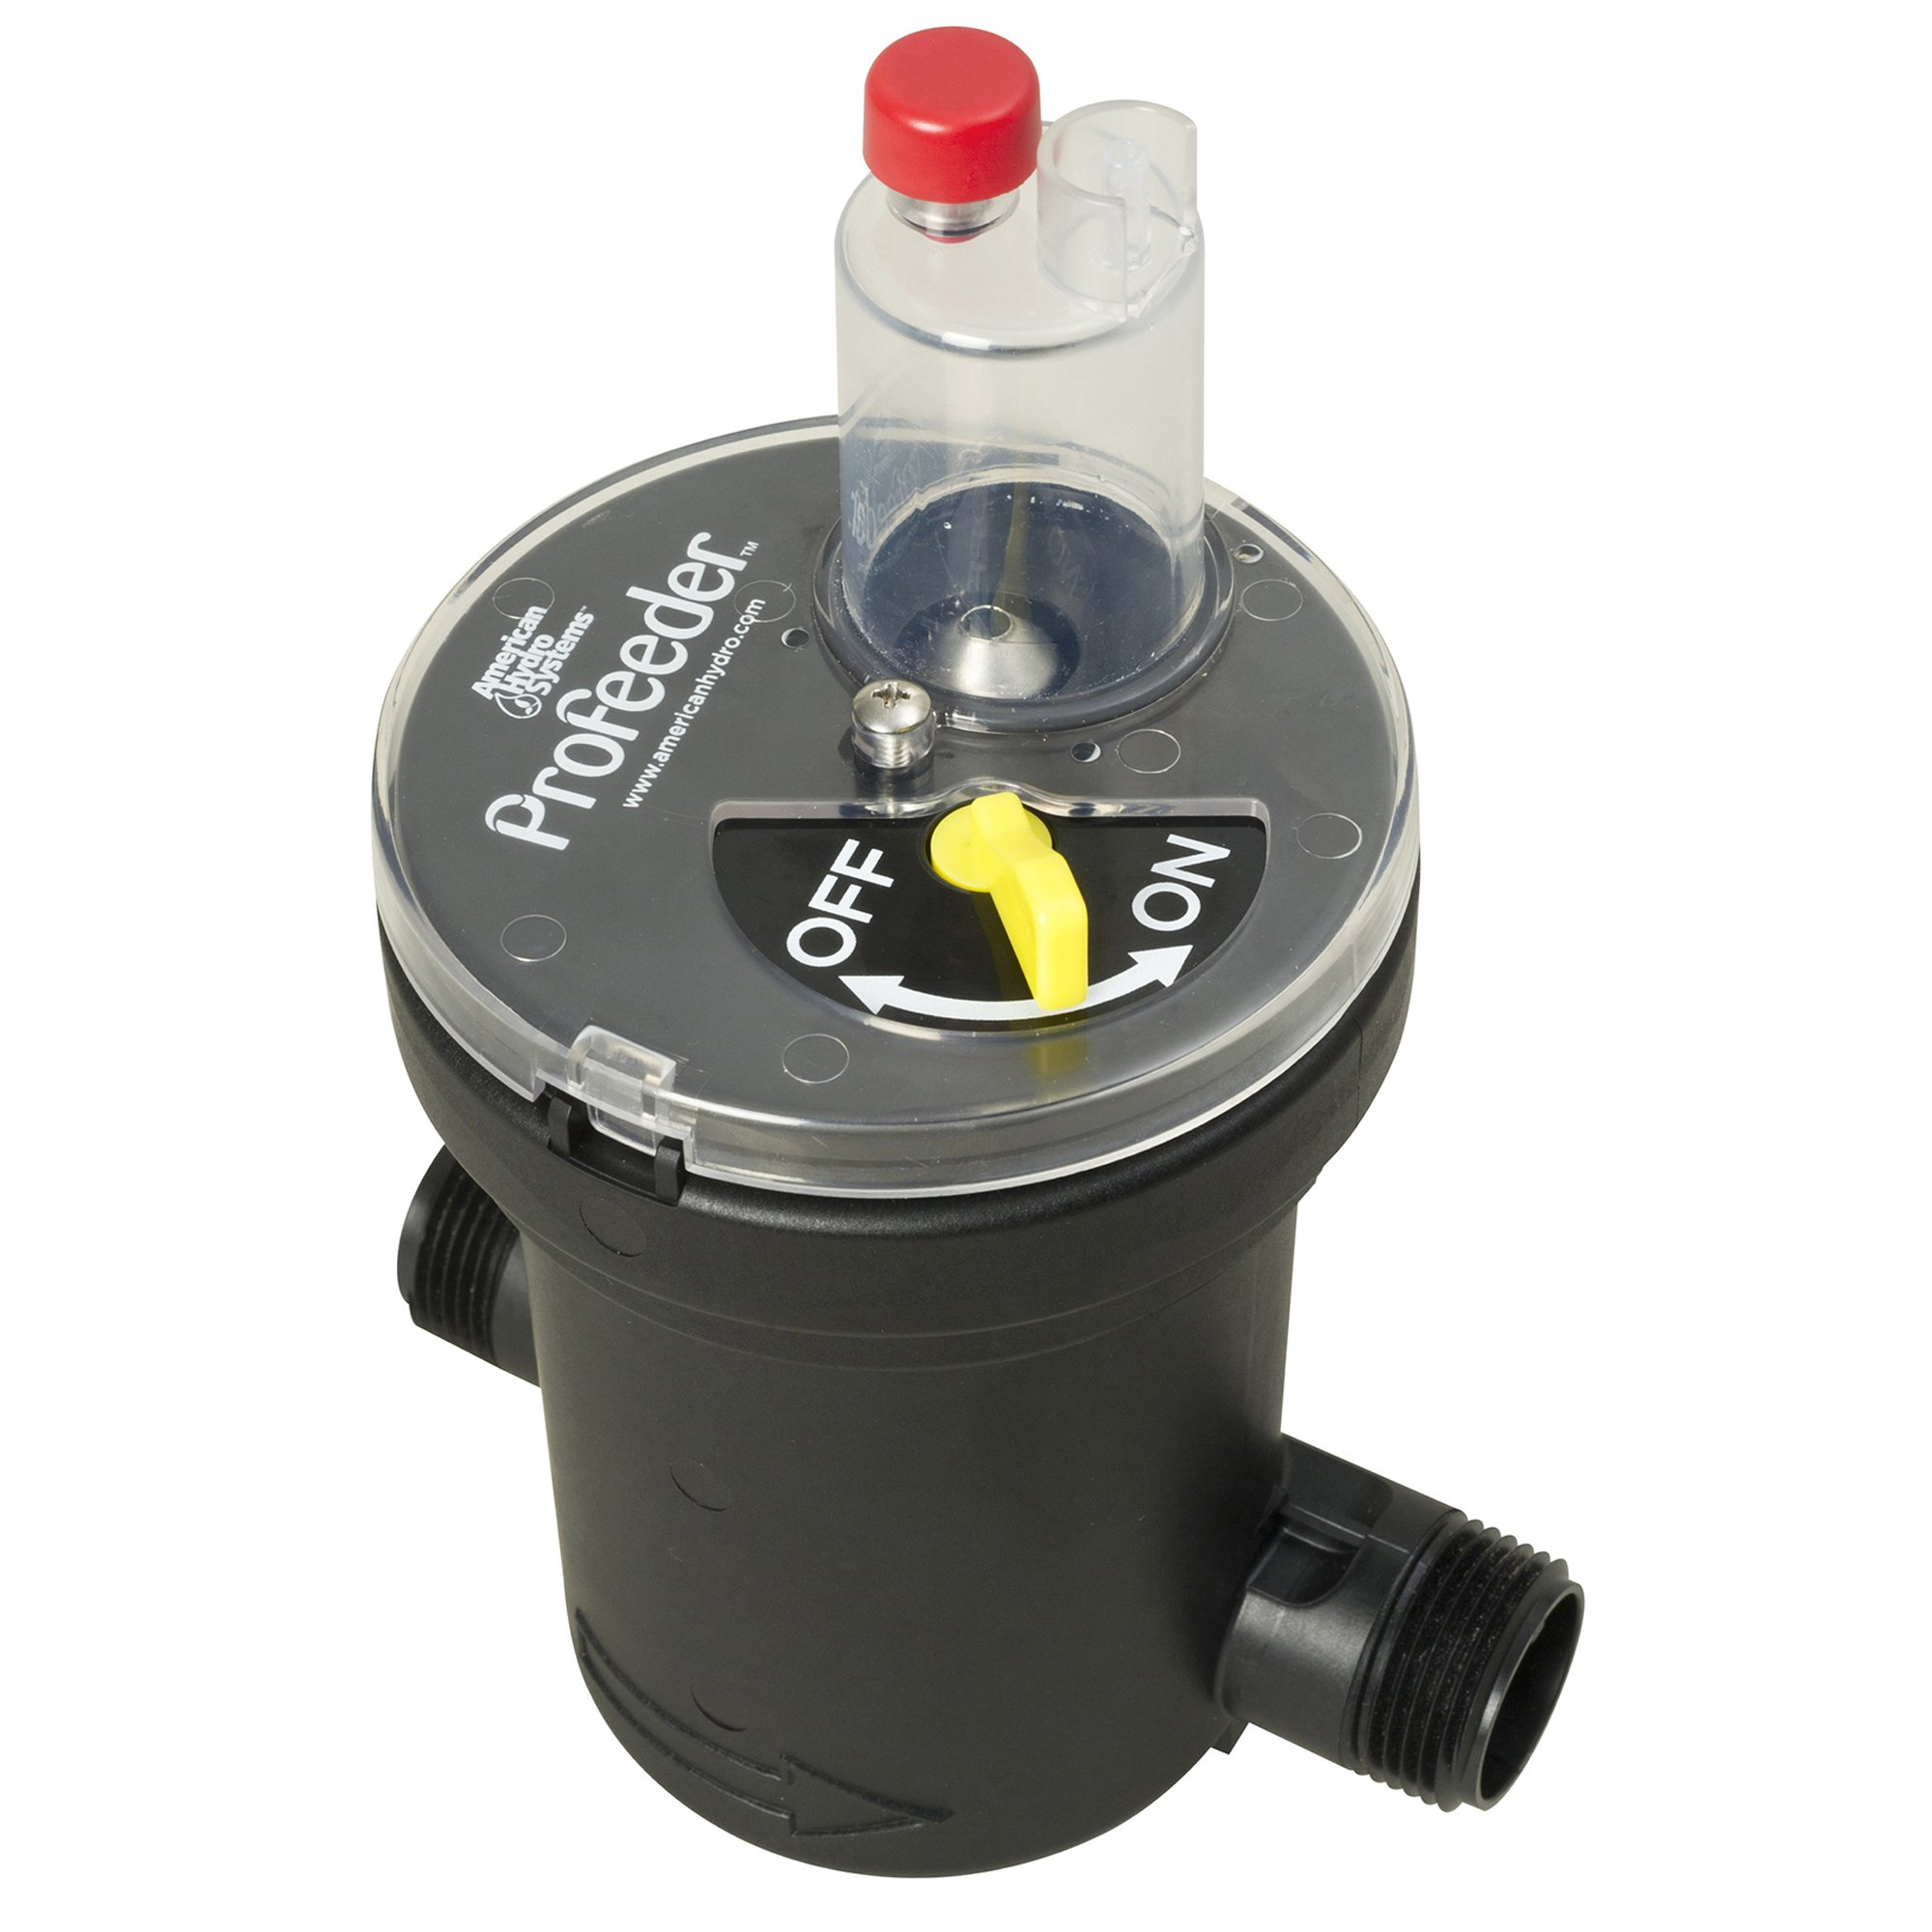 American Hydro Systems P1X ProFeeder Non-Electric Auto Proportional Feeder for Irrigation Systems